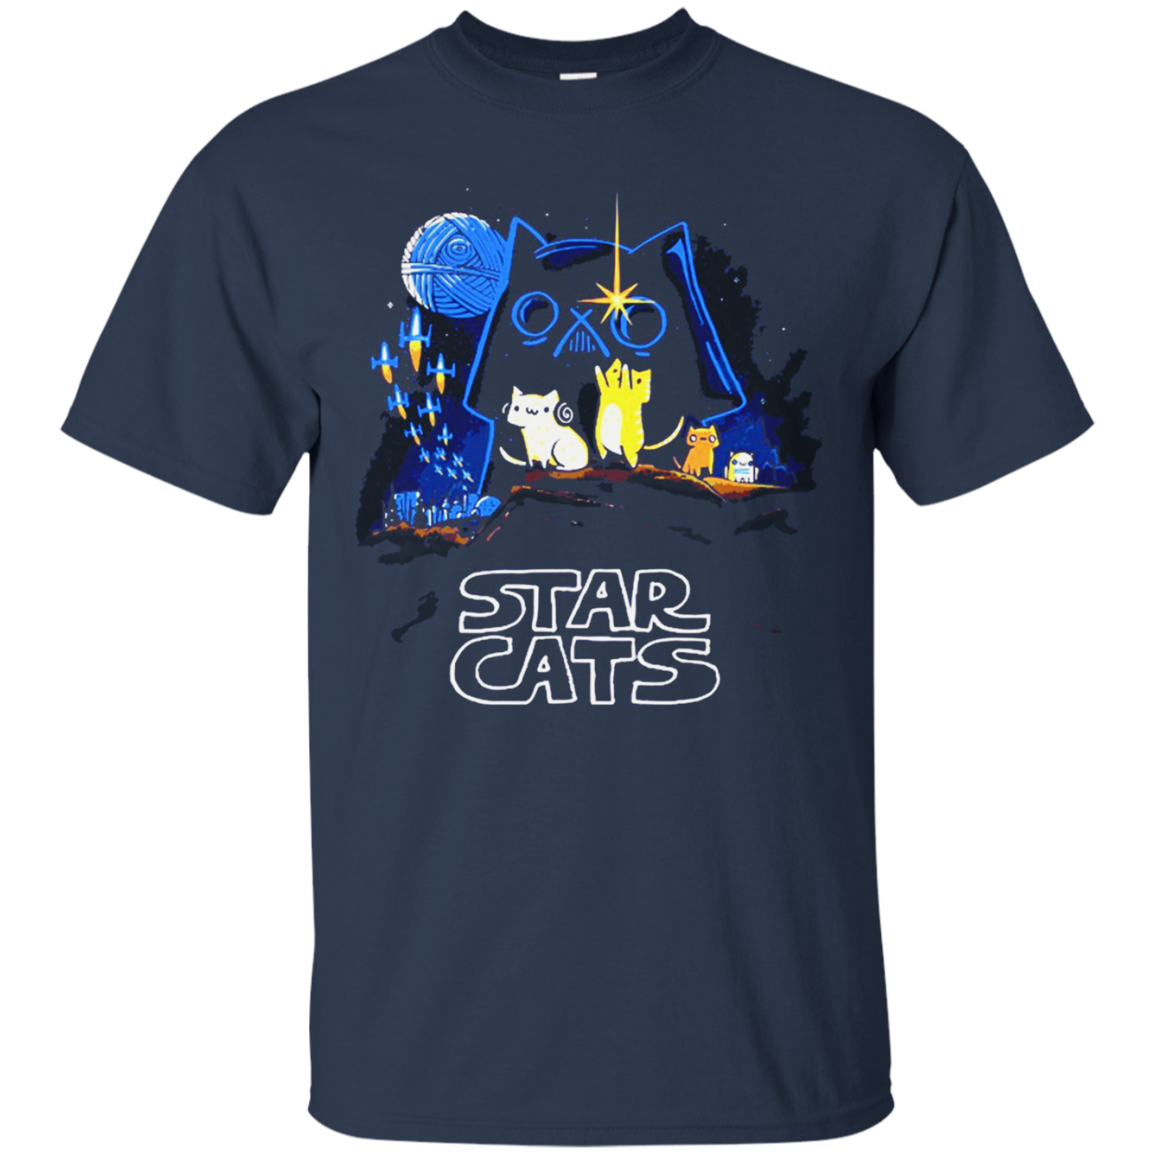 Star Cats T Shirt